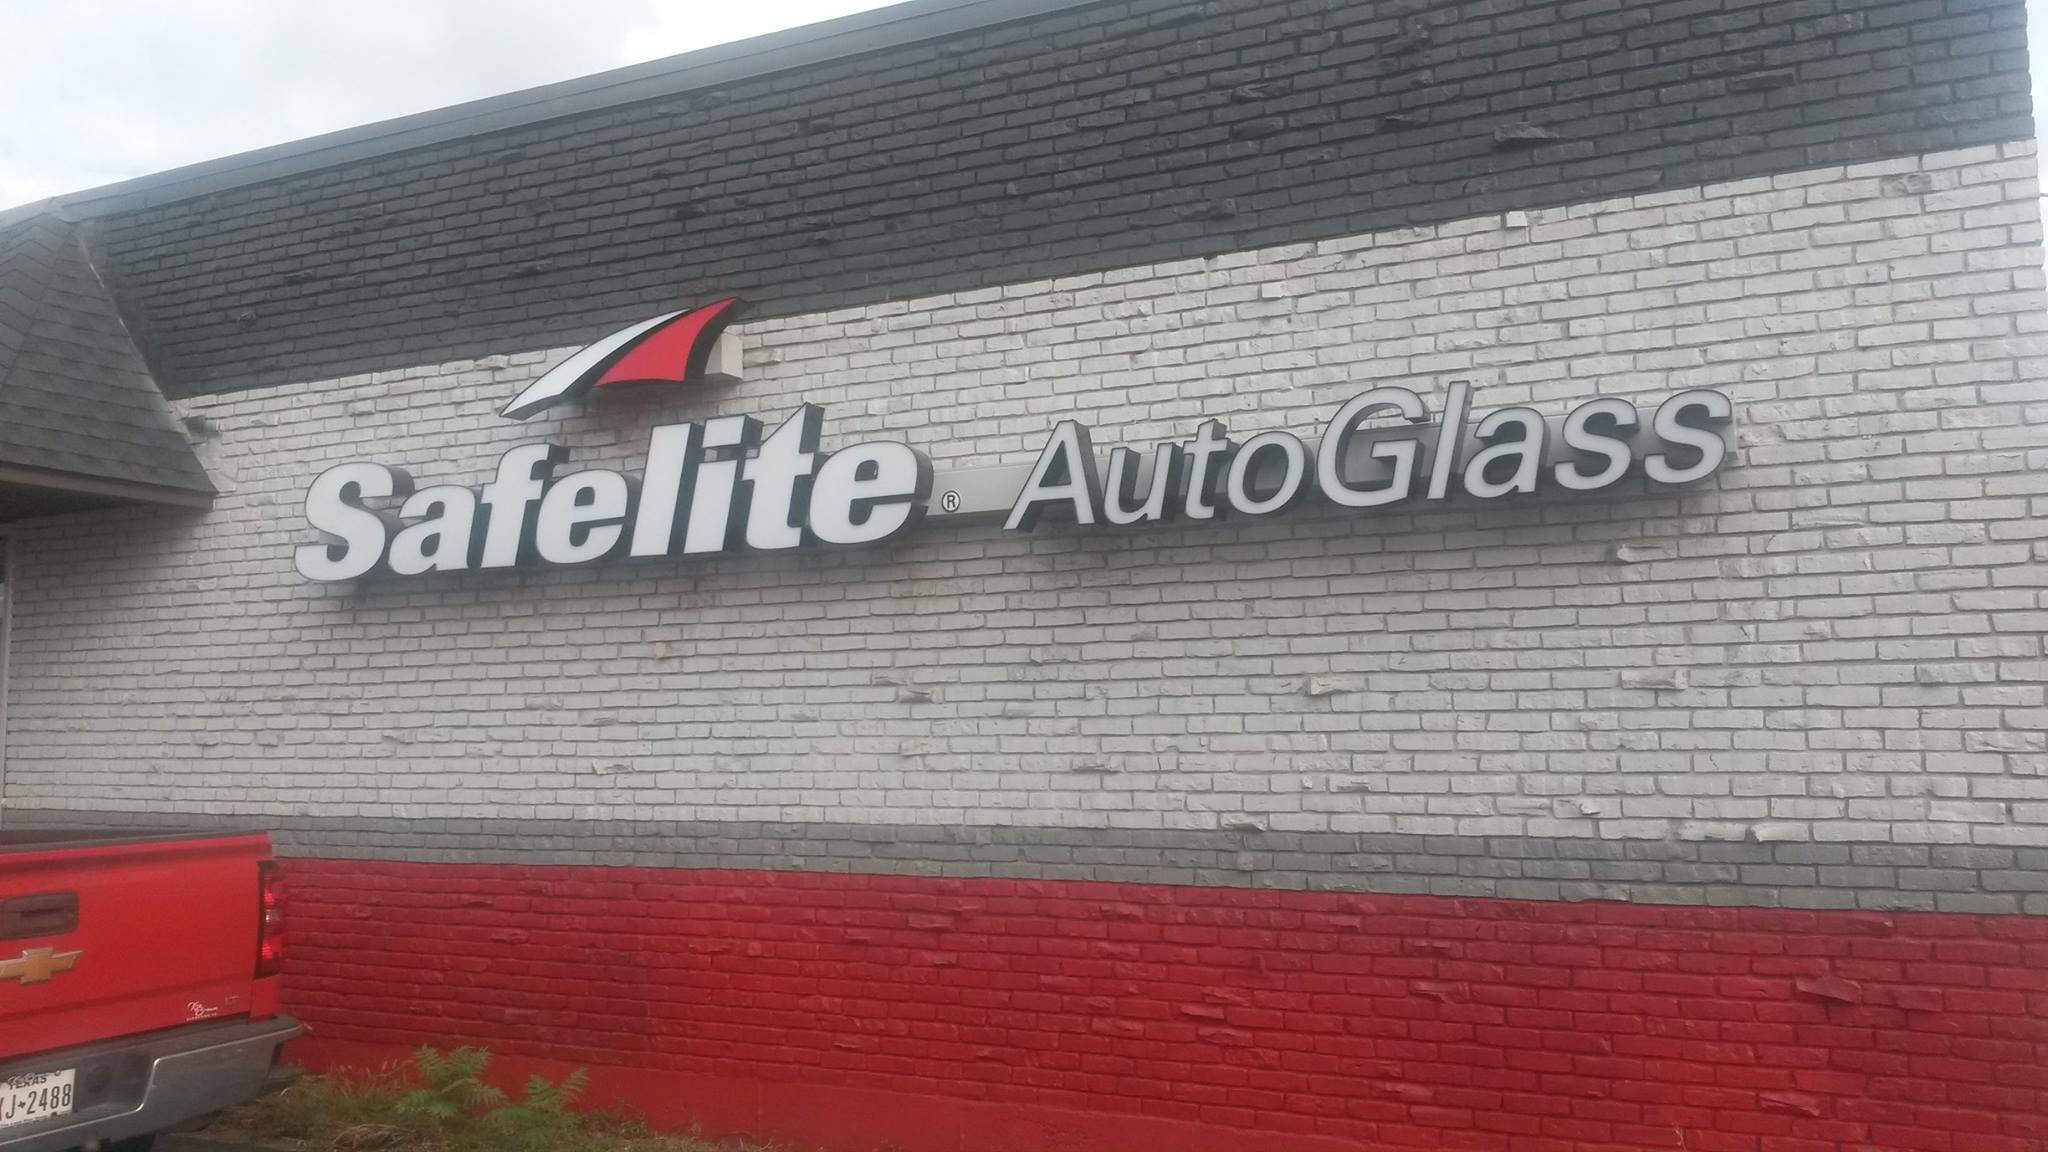 Safelite Auto Glass